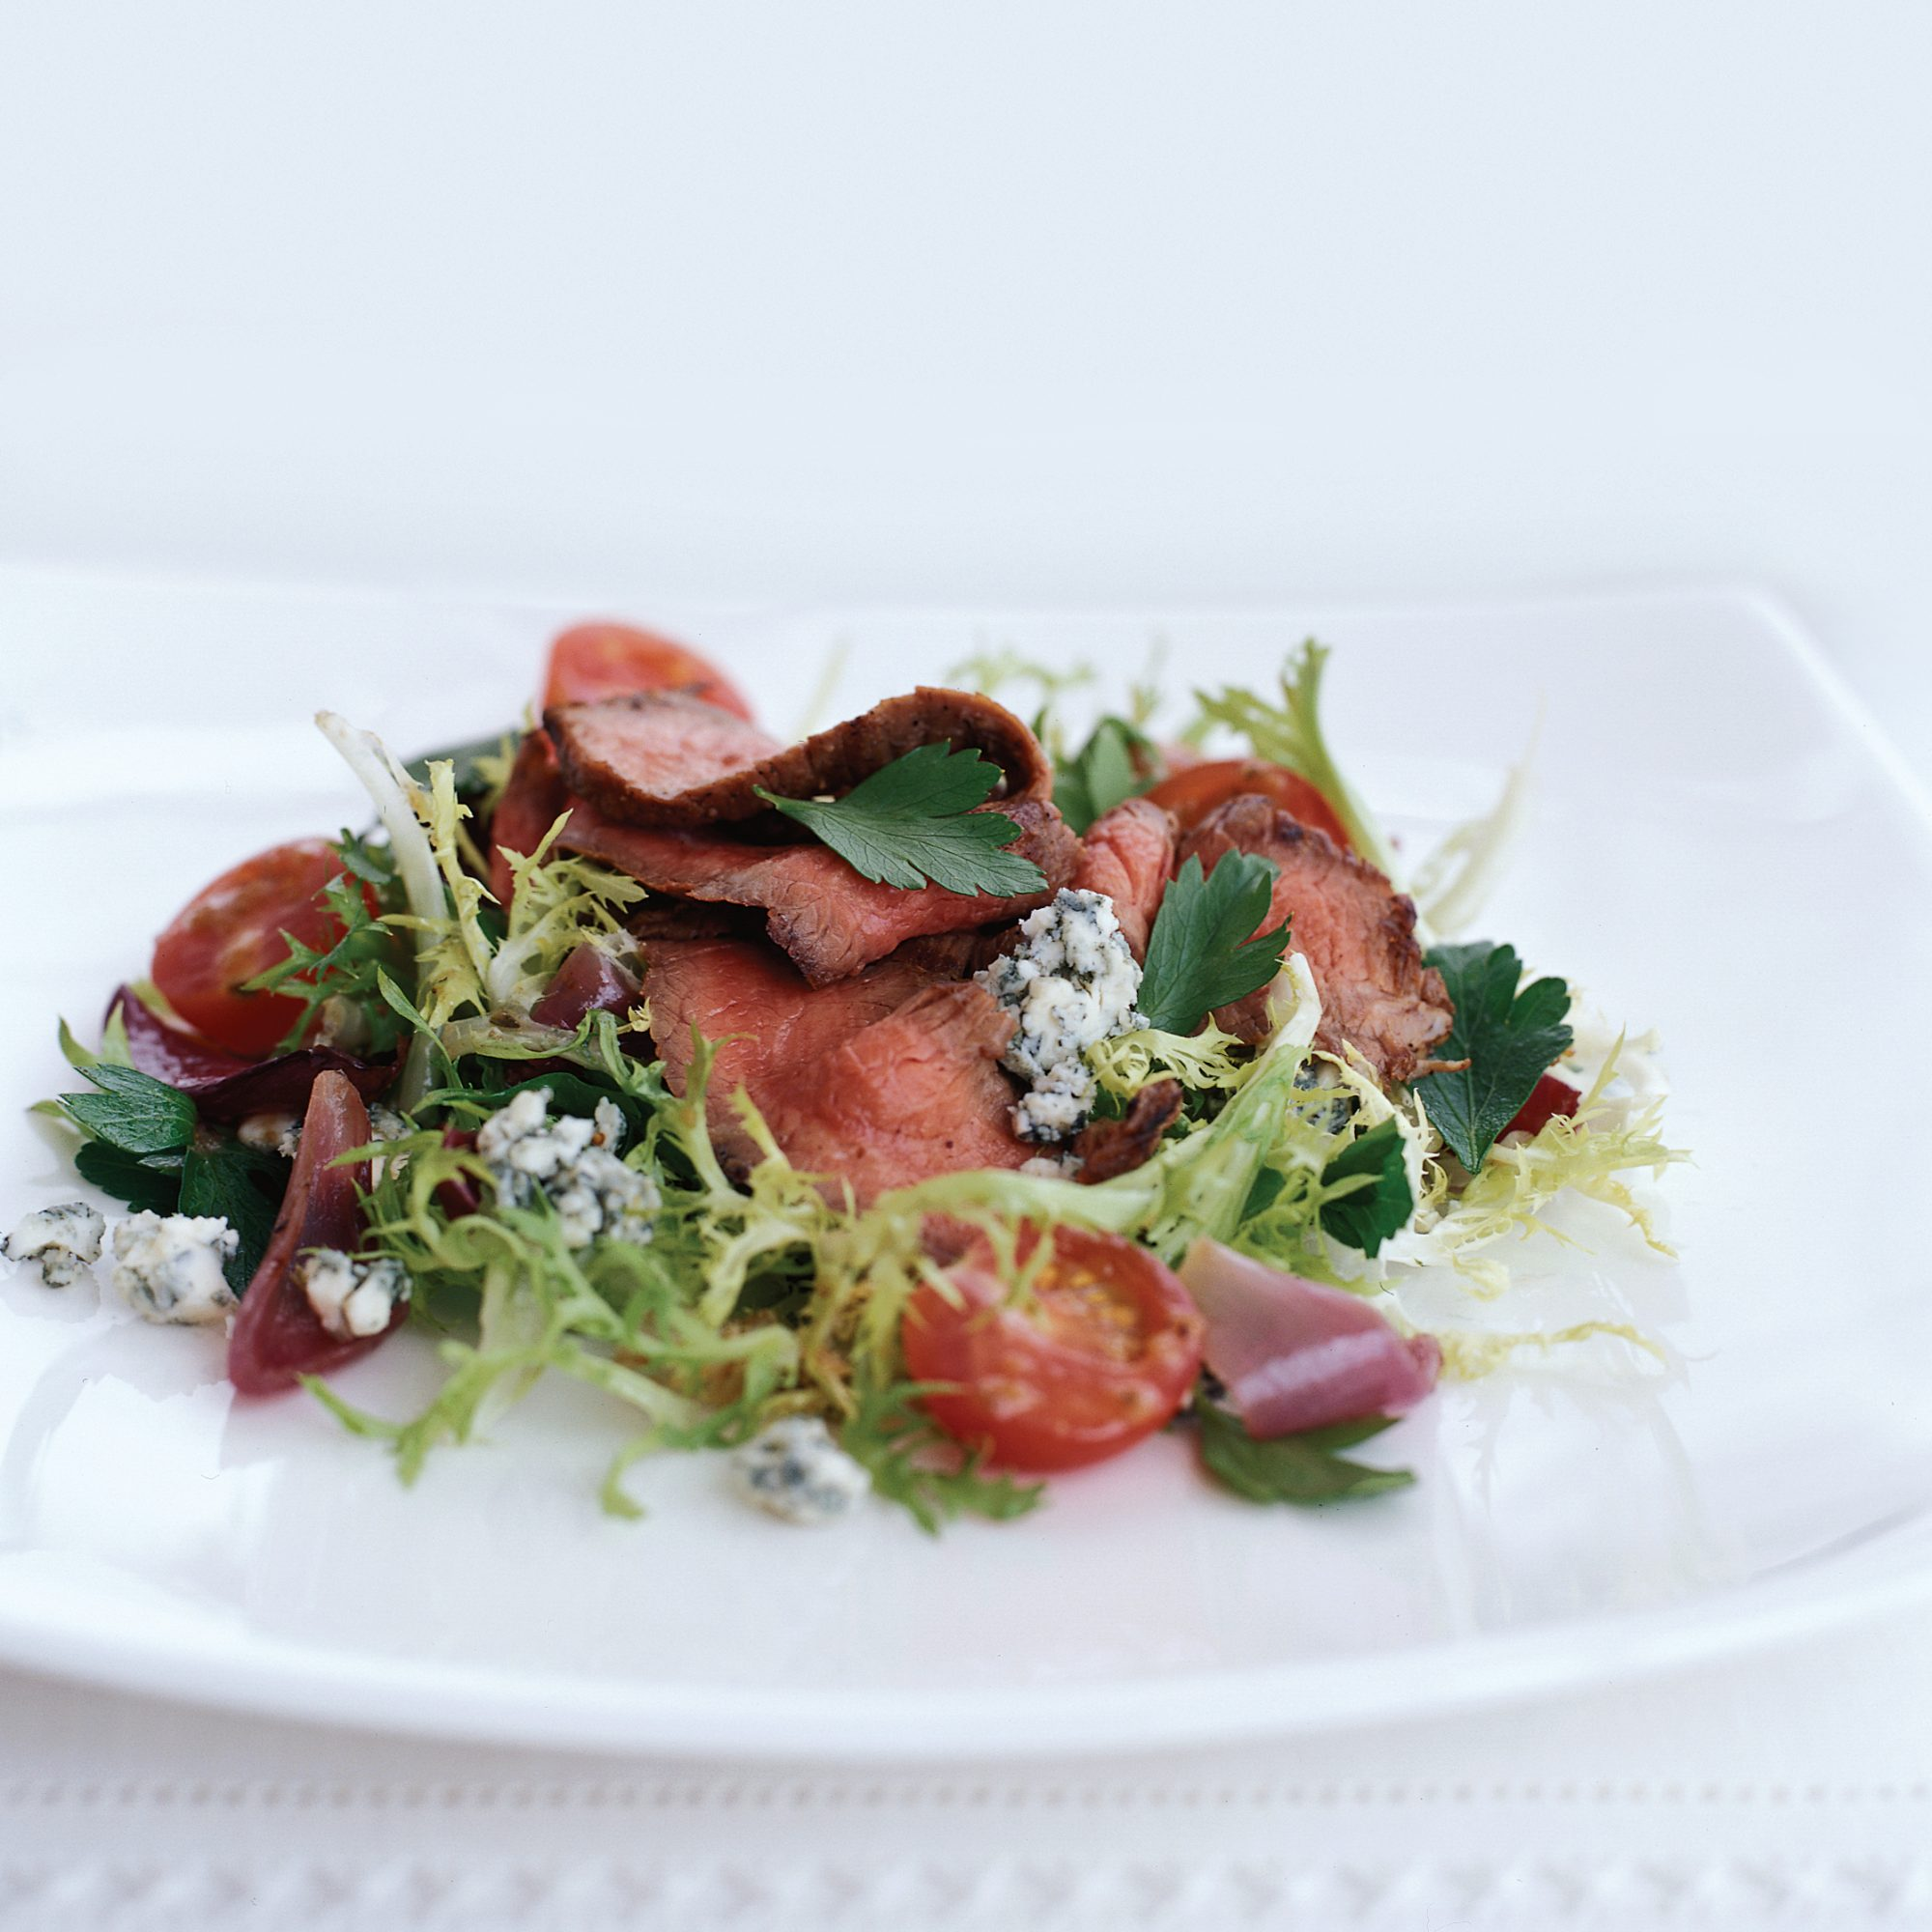 Grilled Chili-Rubbed Steak Salad with Roasted Shallot Vinaigrette